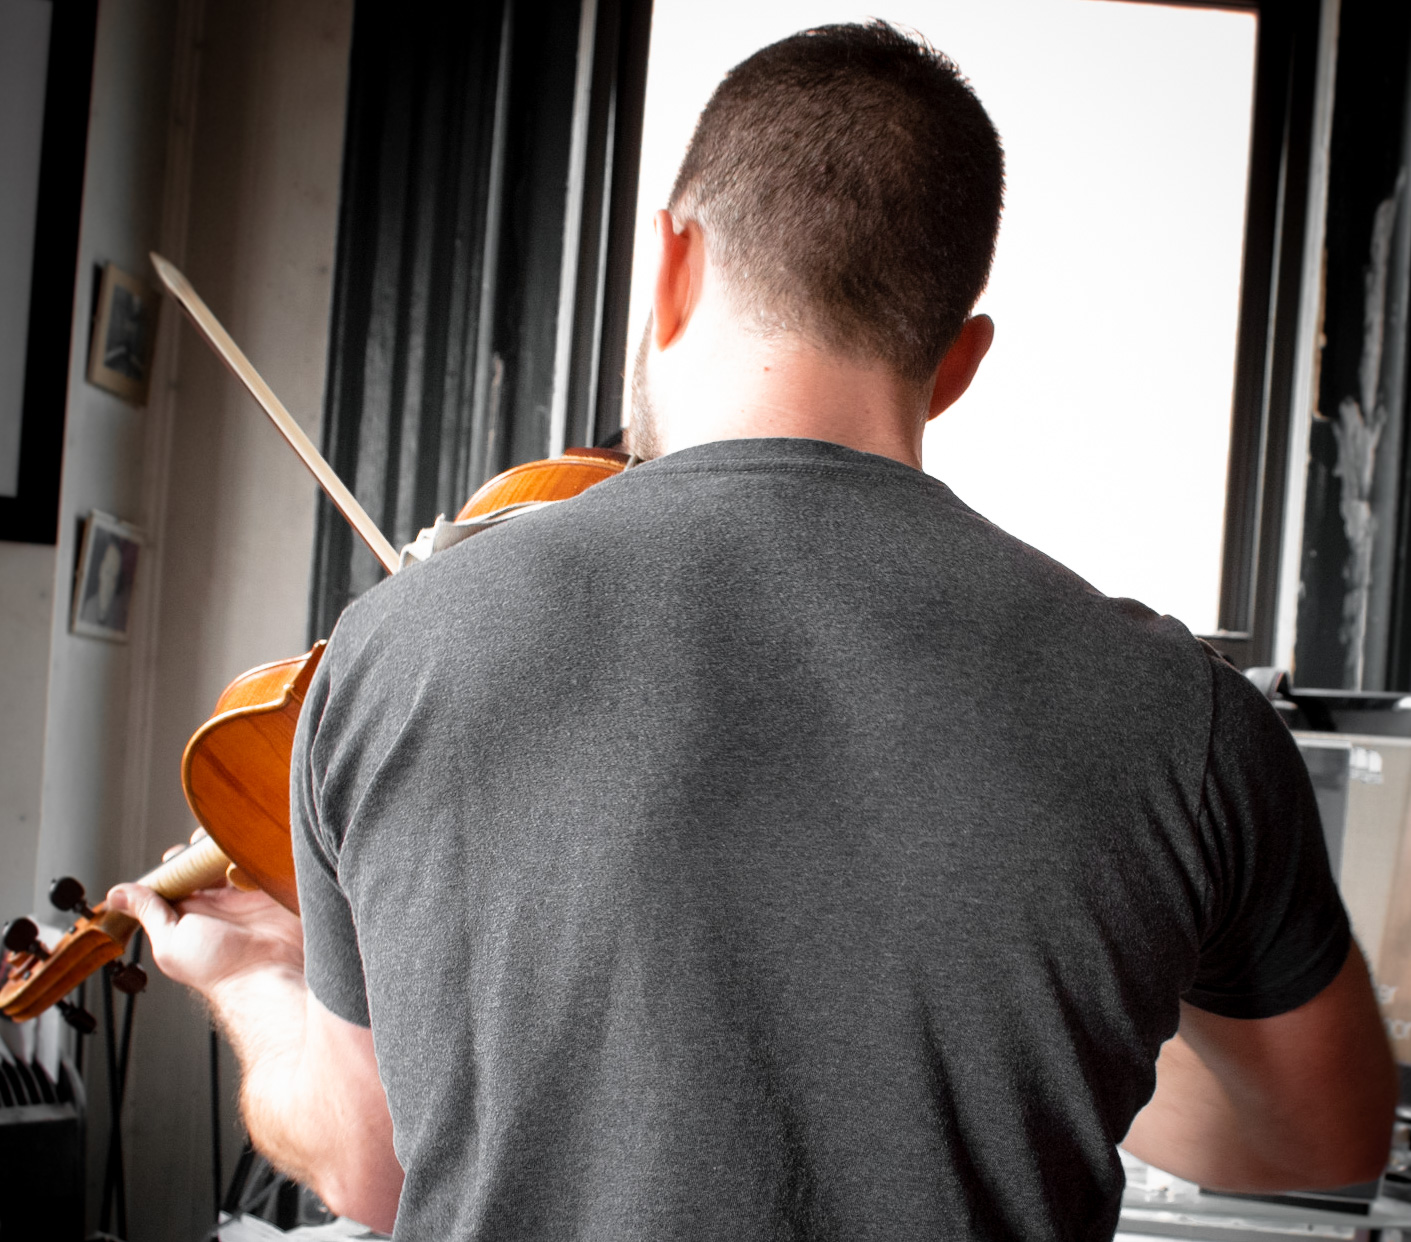 """You can only get a back this jacked by playing viola like a boss."" – Drew Ricciardi [this quote may not have actually been said by Drew Ricciardi]"